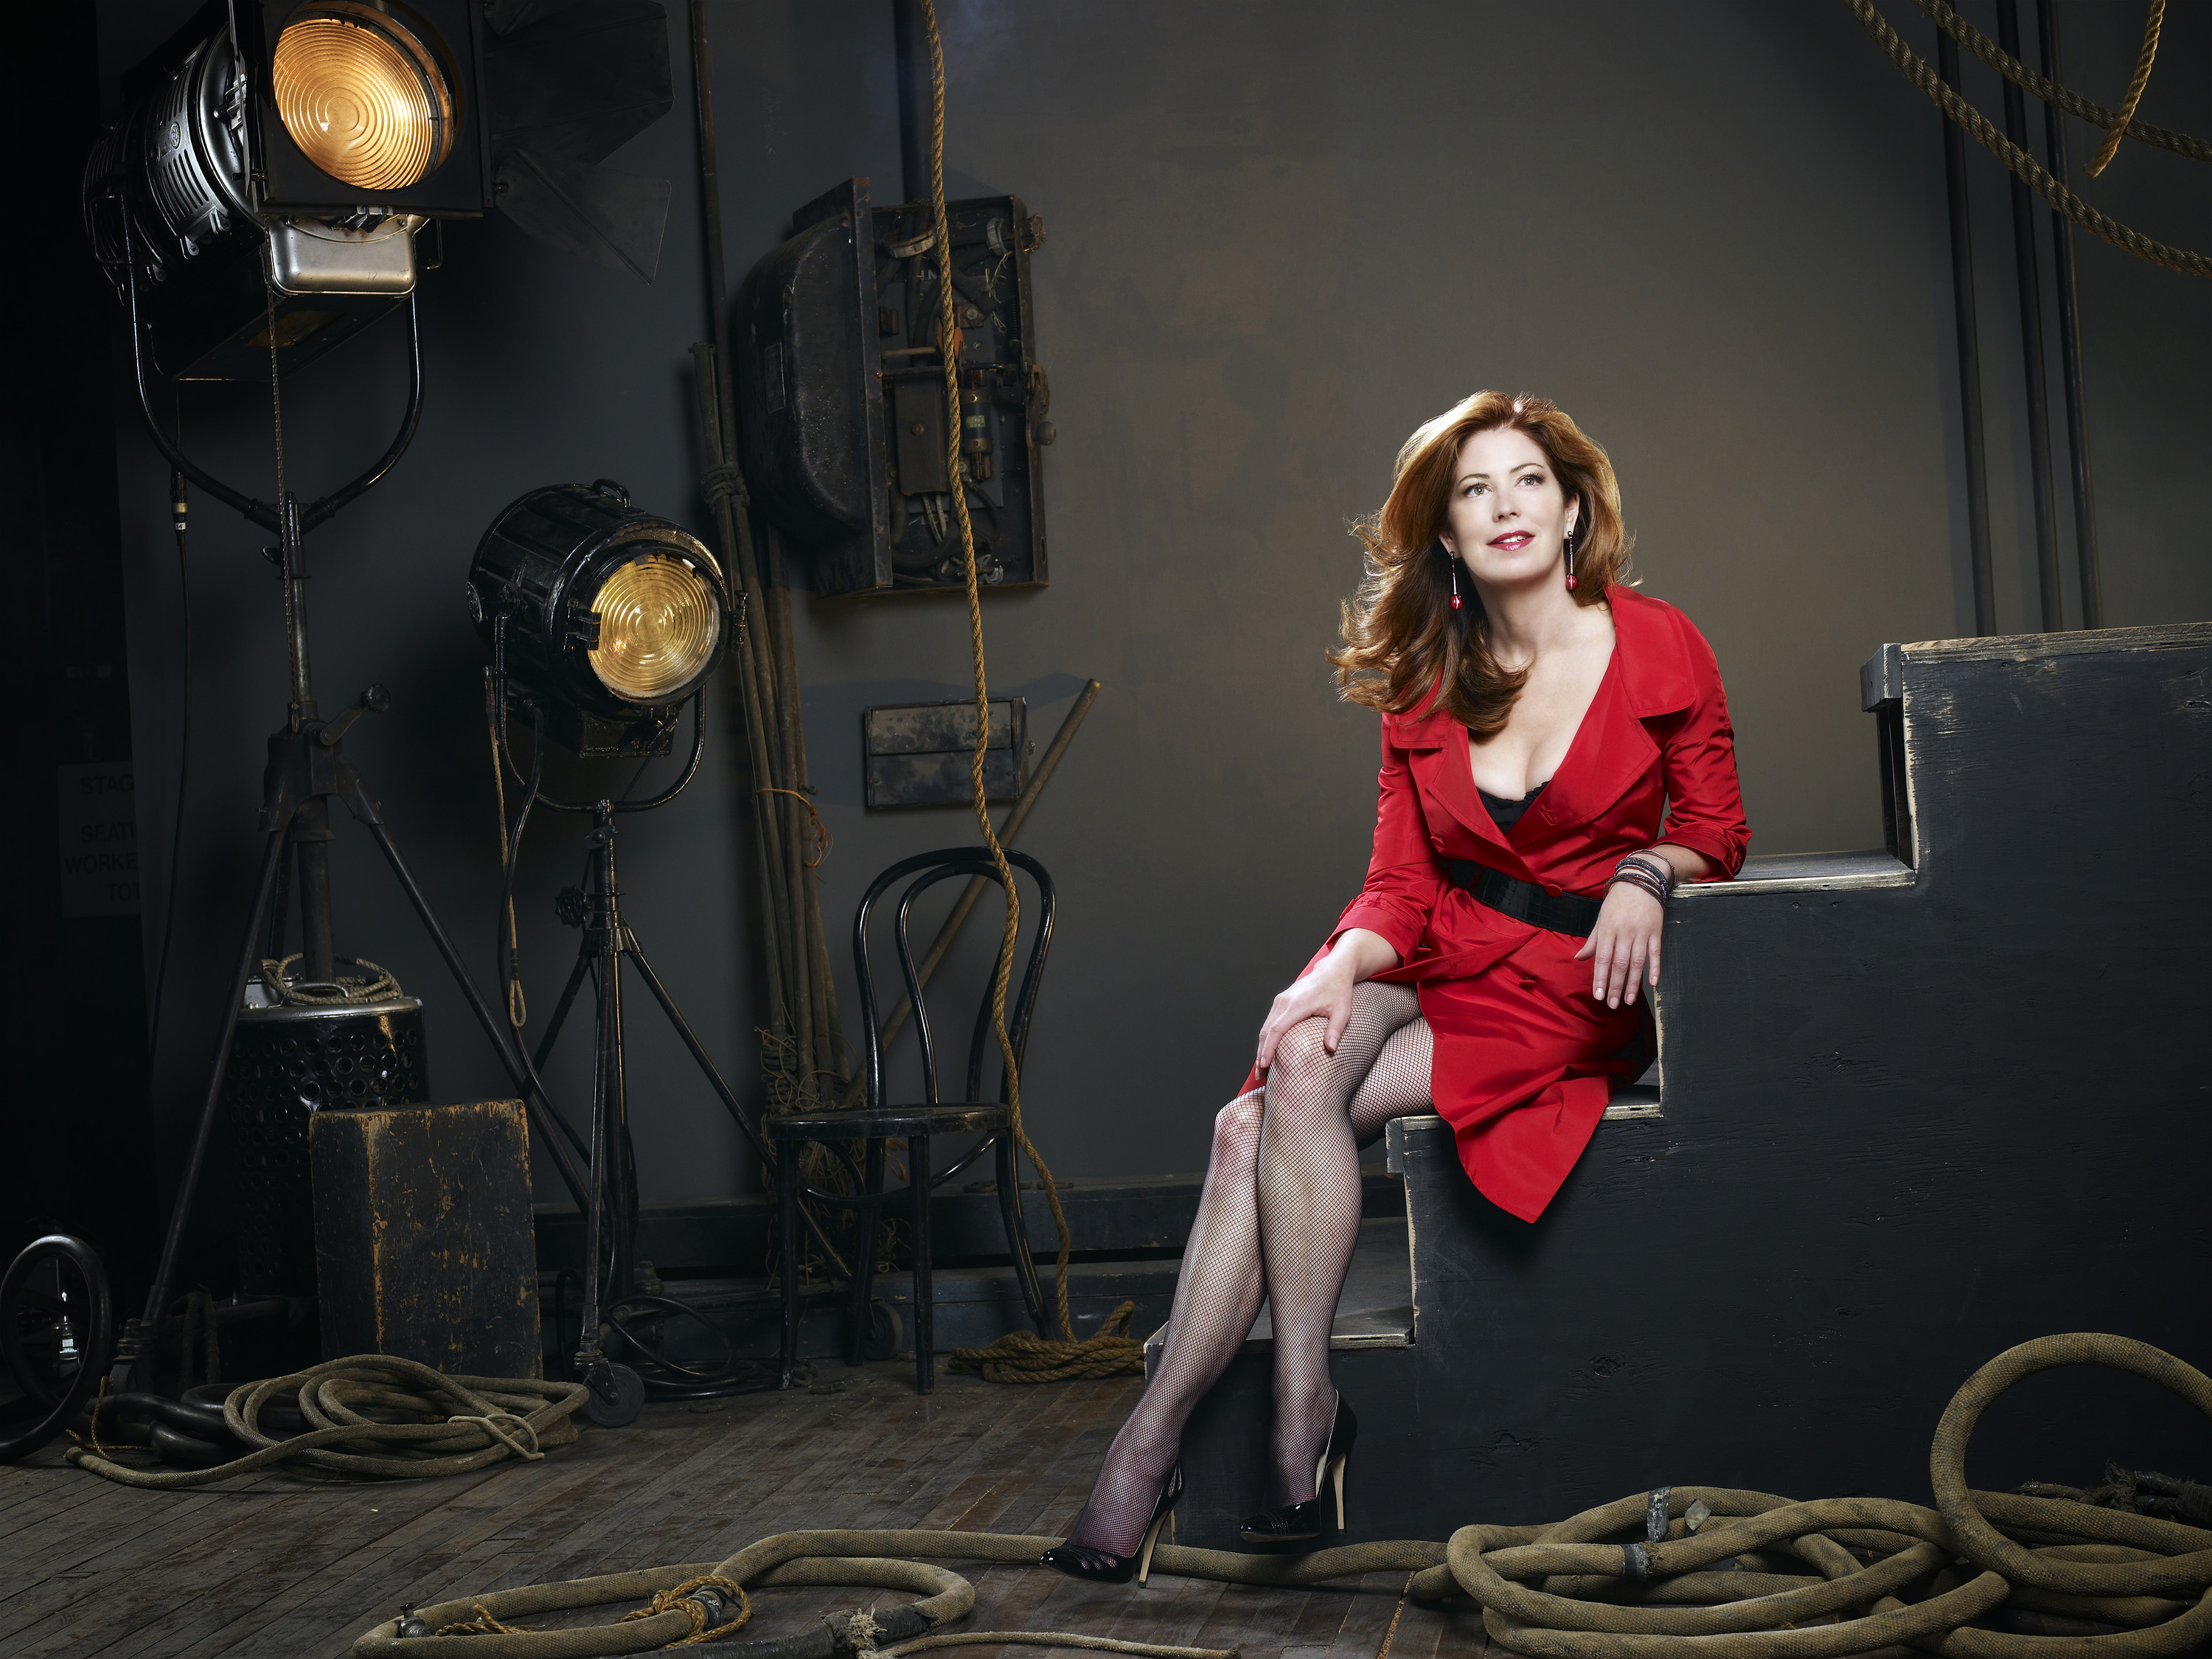 Desperate Housewives, Dana Delany as Katherine Mayfair ...